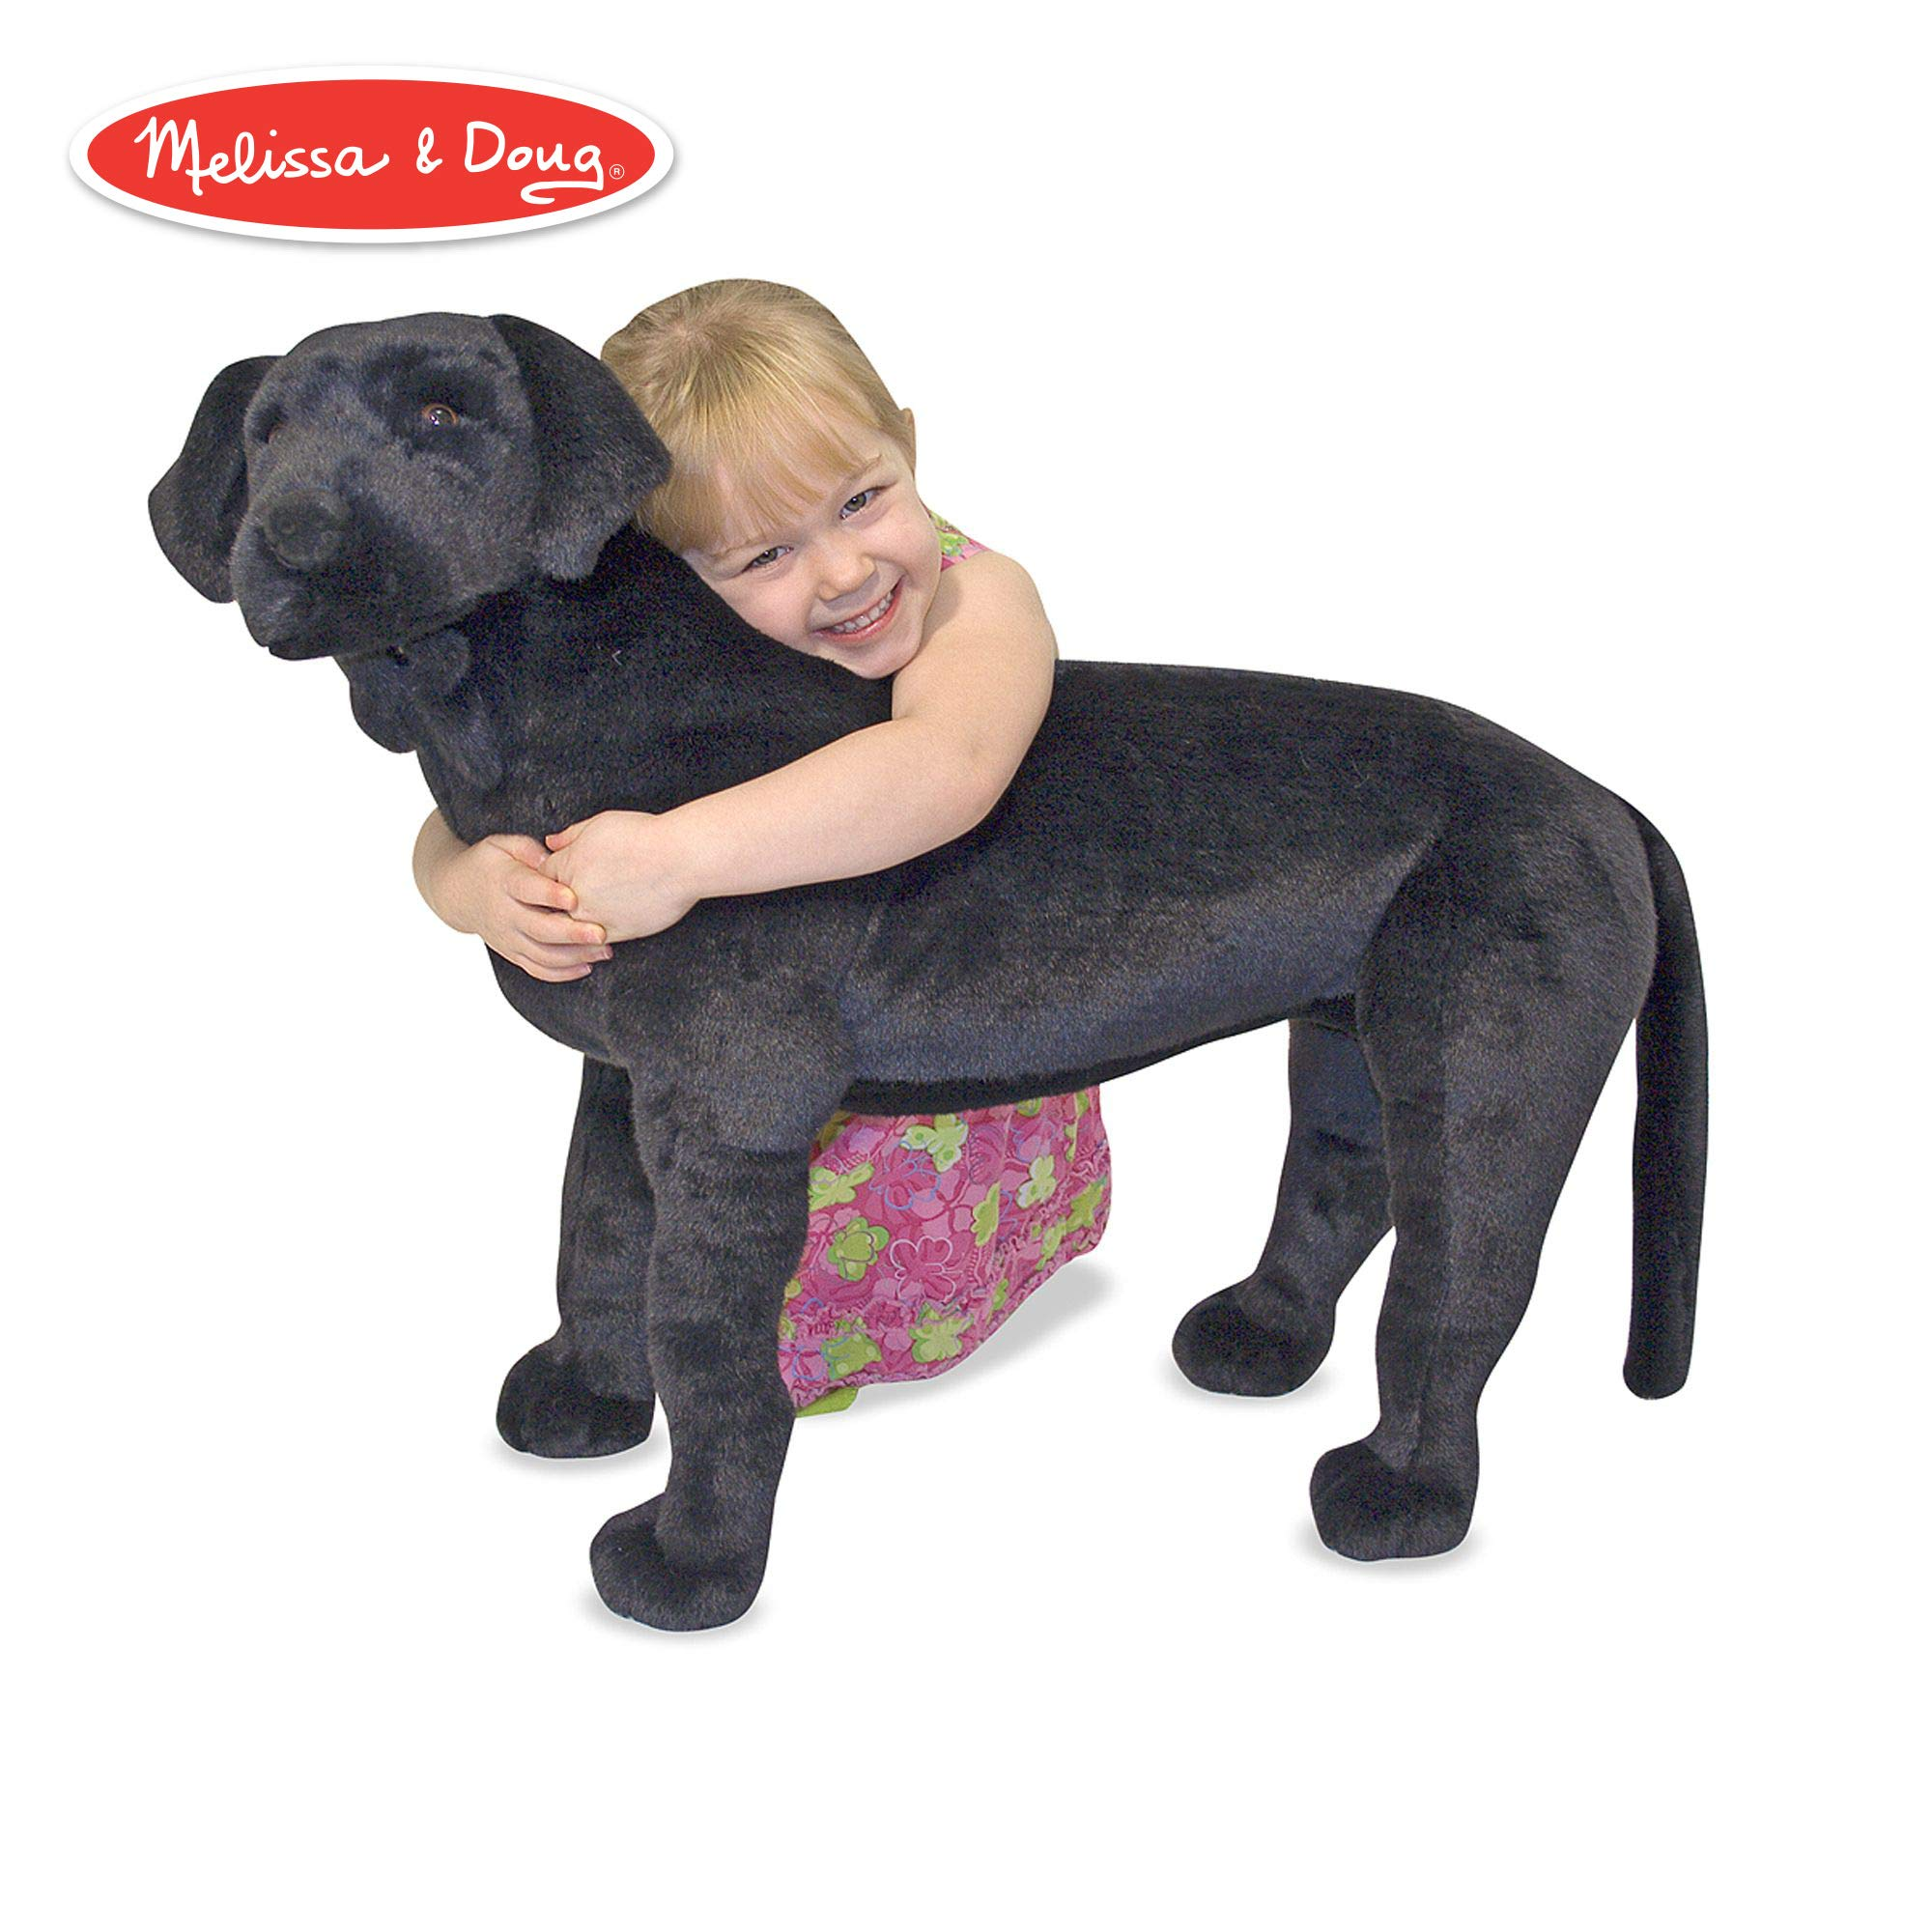 Melissa & Doug Black Lab Giant Stuffed Animal (Wildlife, Soft Fabric, Beautiful Black Lab Markings, 30.5'' H X 19.5'' W X 9.5'' L) by Melissa & Doug